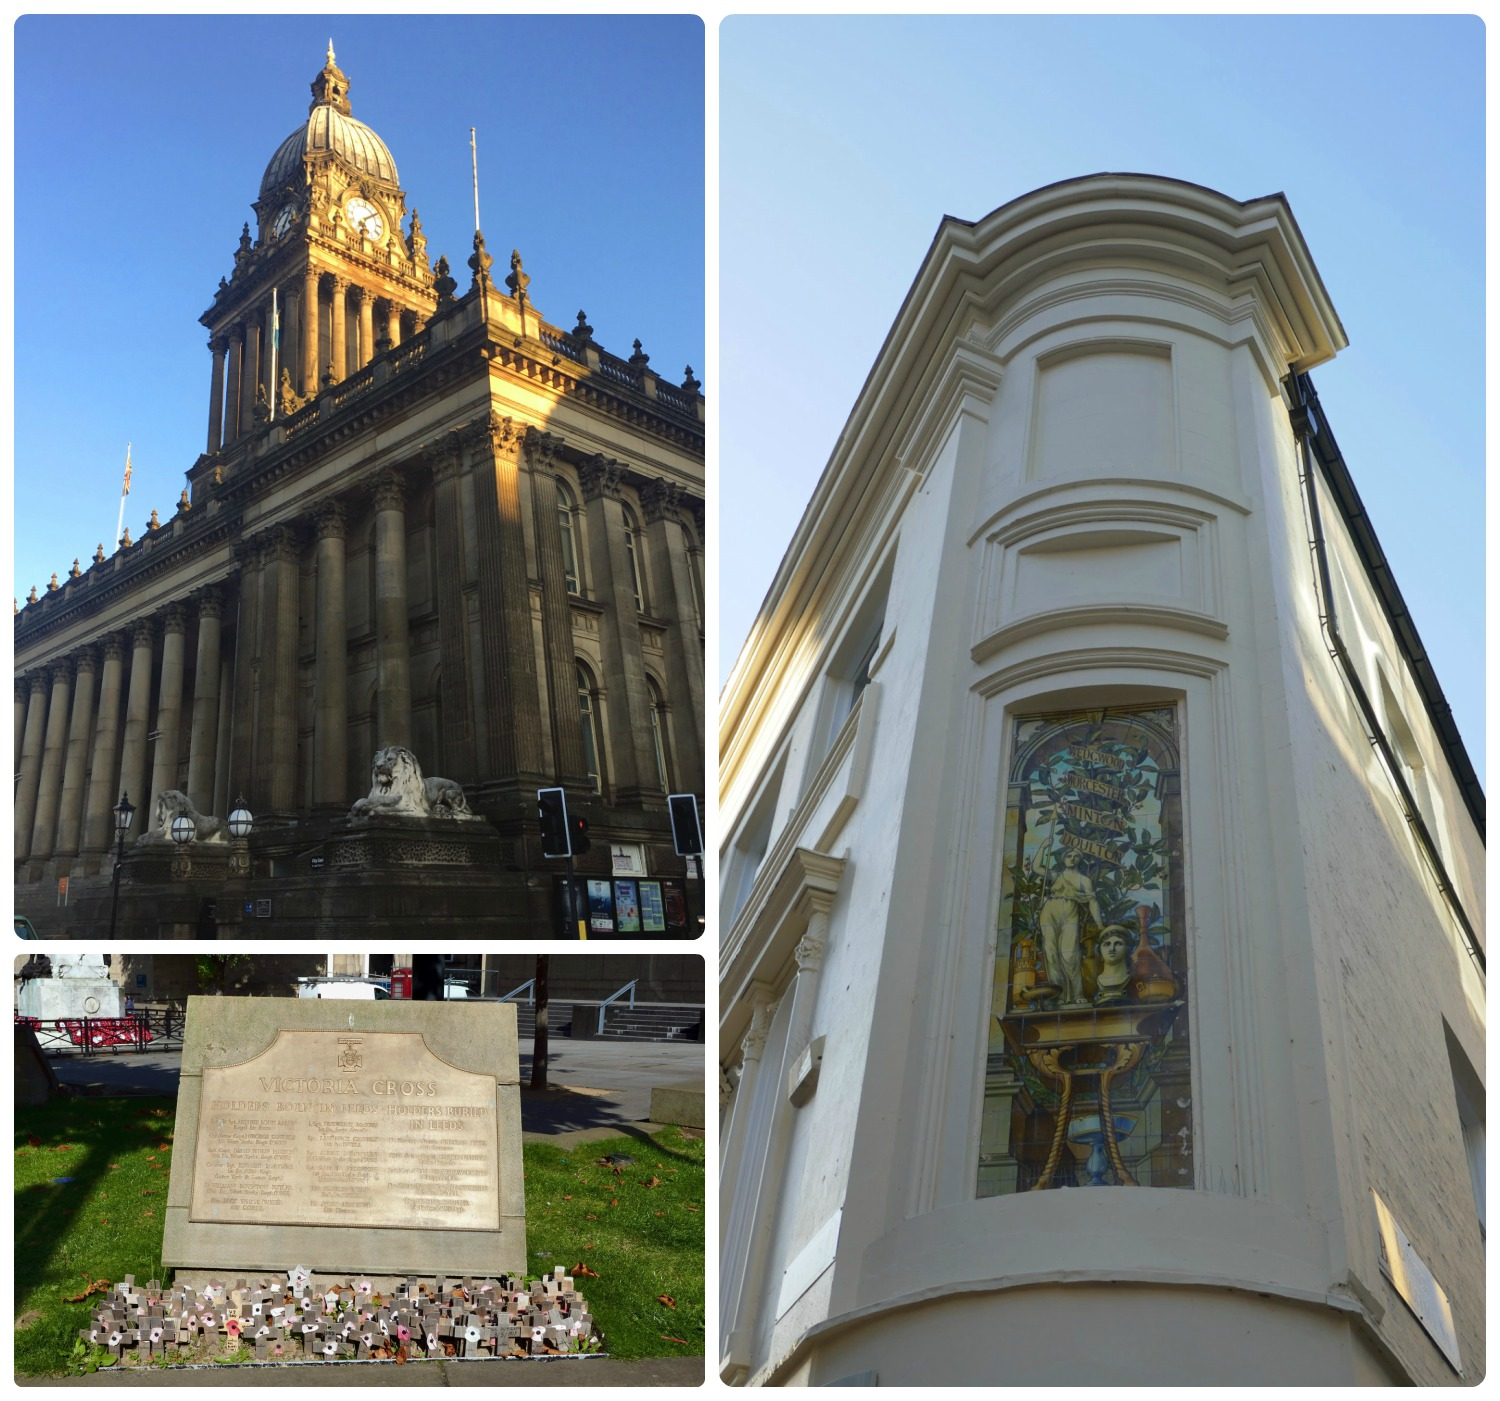 Next to Leeds Art Gallery is Leads Town Hall (top left image), and nearby is the Victoria Cross Memorial (bottom left image). Plus, on our way to the gallery, we passed by a building displaying a beautiful piece of art!